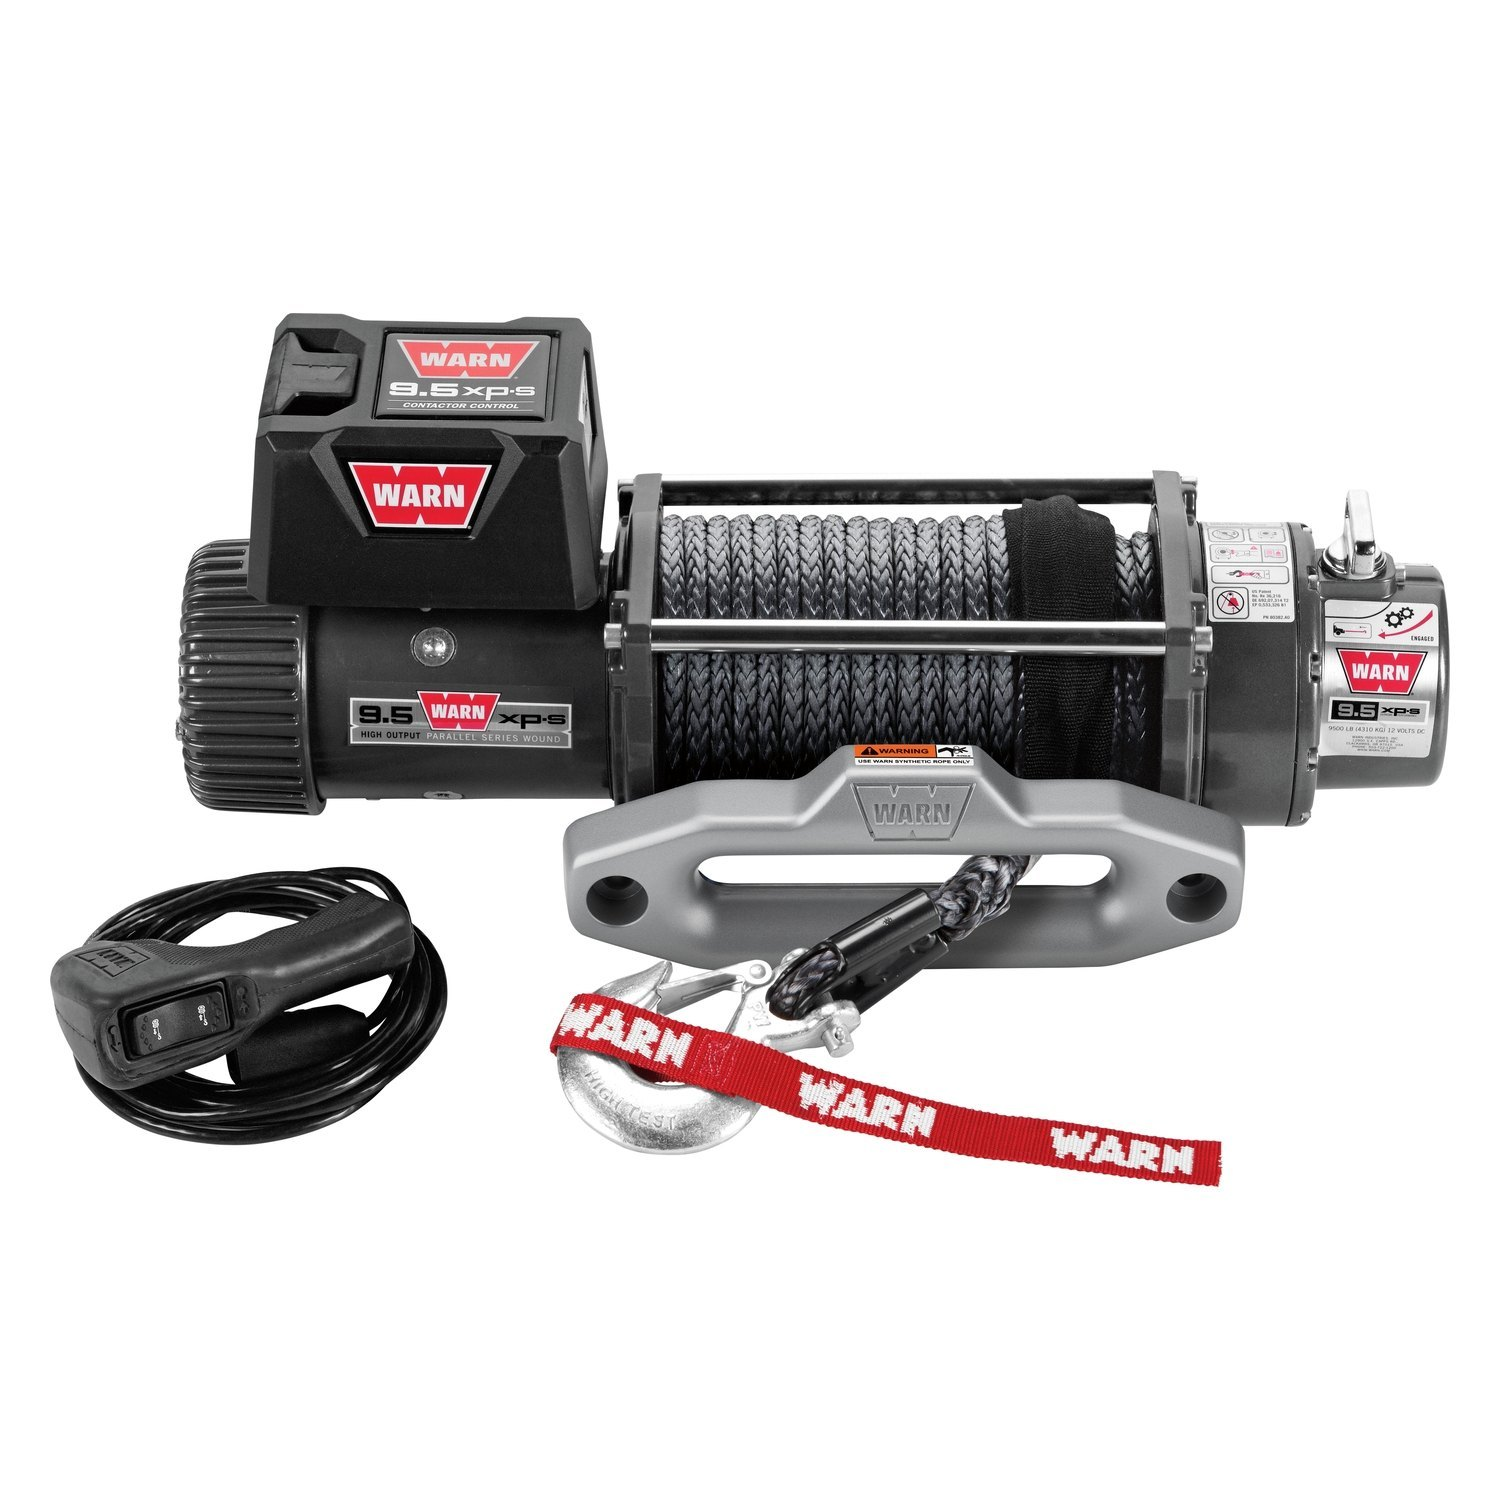 warn 9 5 xp wiring diagram hdmi to vga pinout 500 lbs 5xp series self recovery electric winch